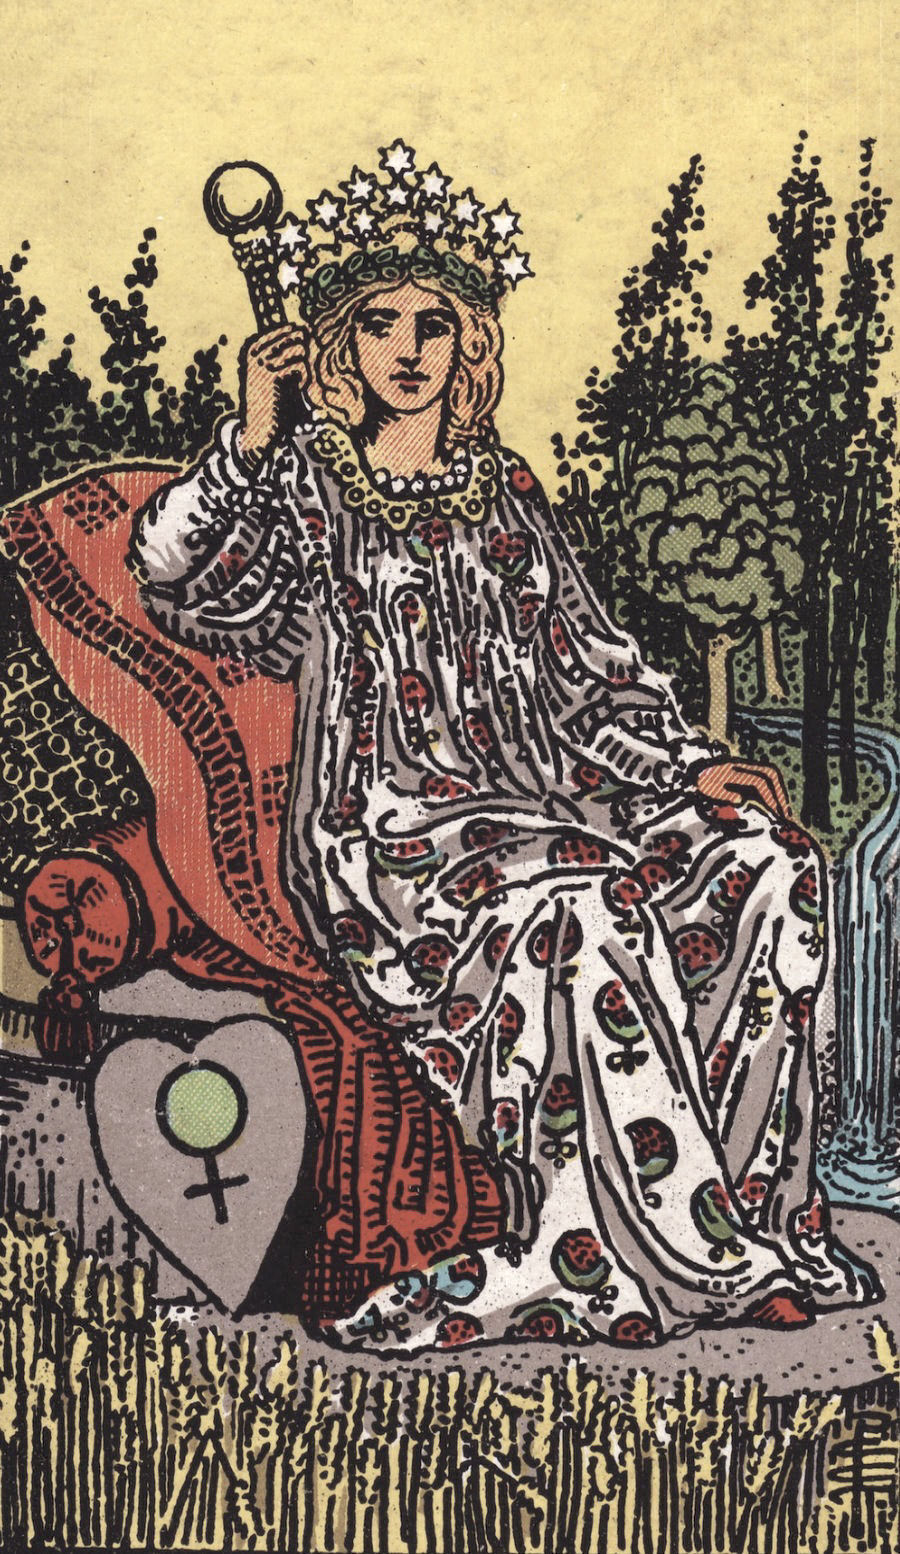 The Empress Tarot Card from the Rider-Waite Deck